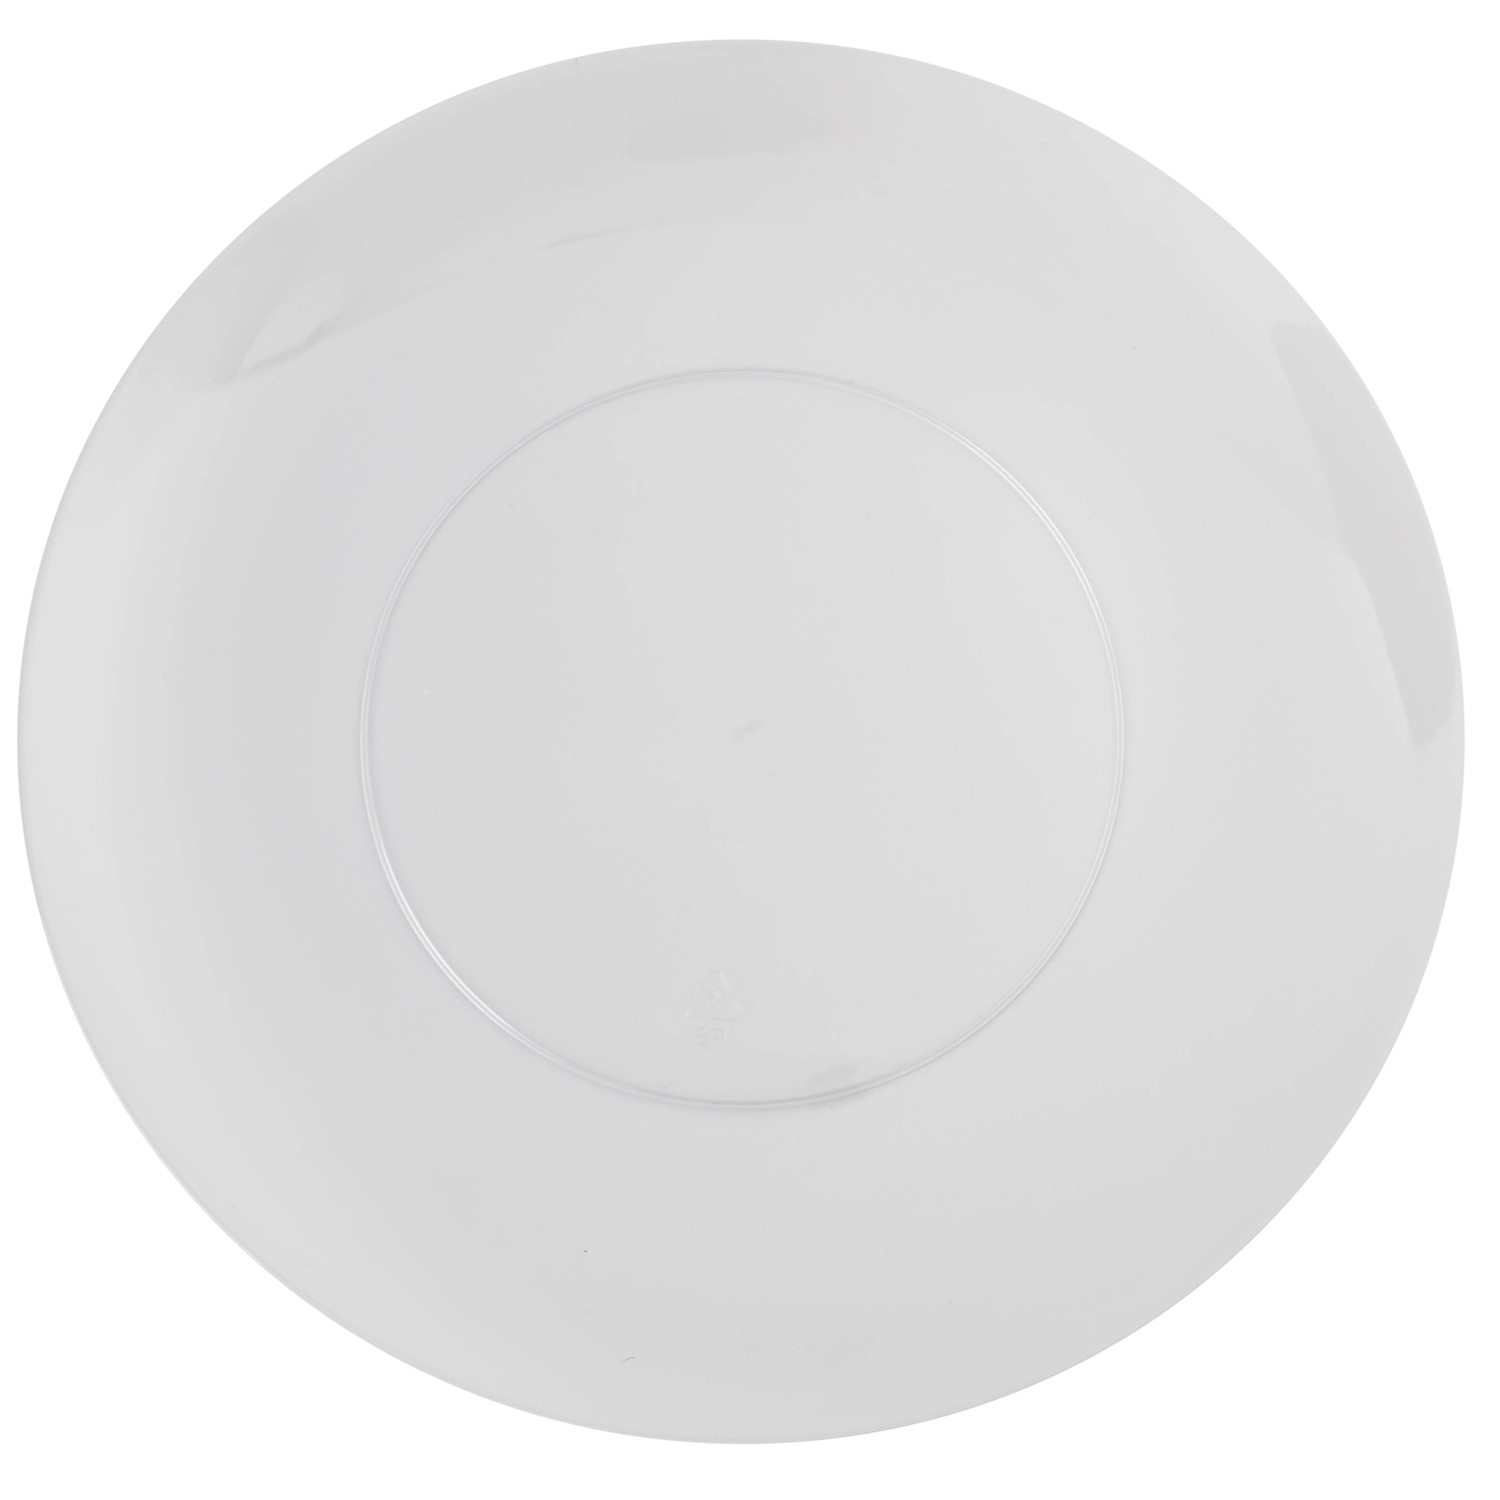 10 In. Trend Glass Look Plastic Plates - 10 Ct.  sc 1 st  Factory Direct Party & Elegant Disposable Dinnerware - Fancy Disposable Plates u0026 Bowls